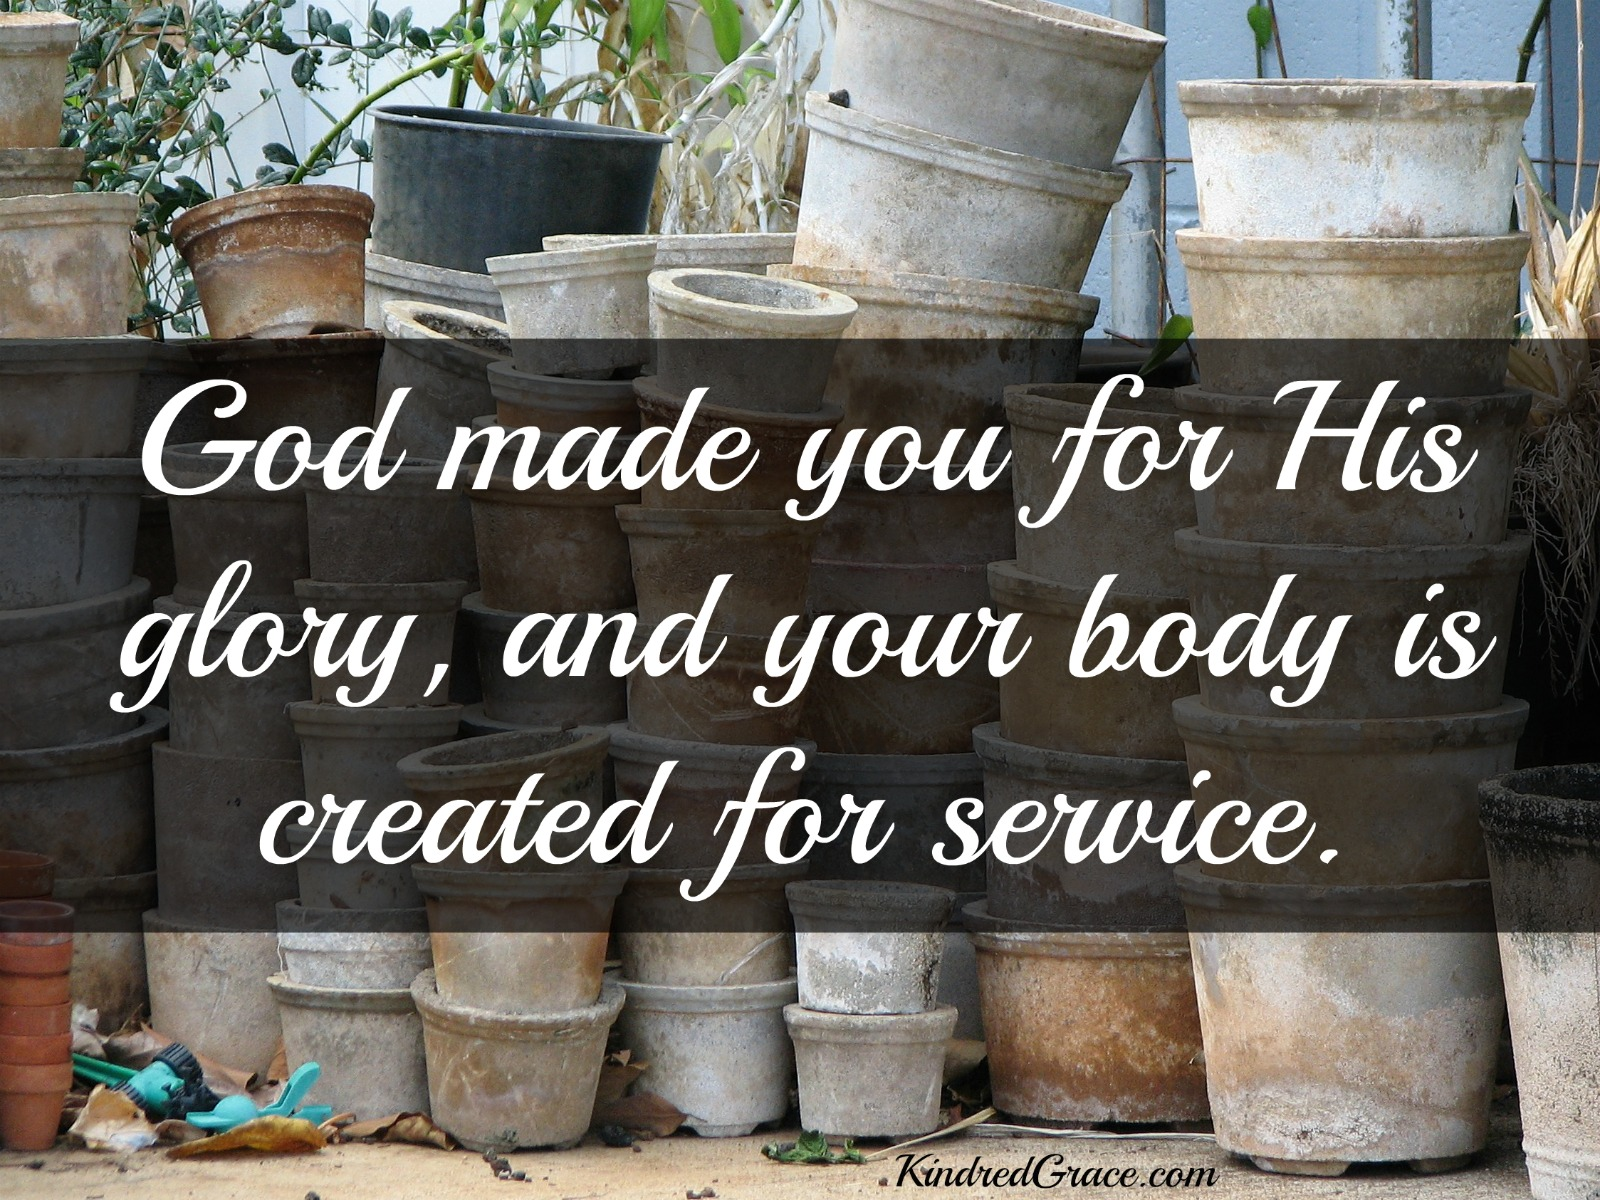 God made you for His glory, and your body is created for service.